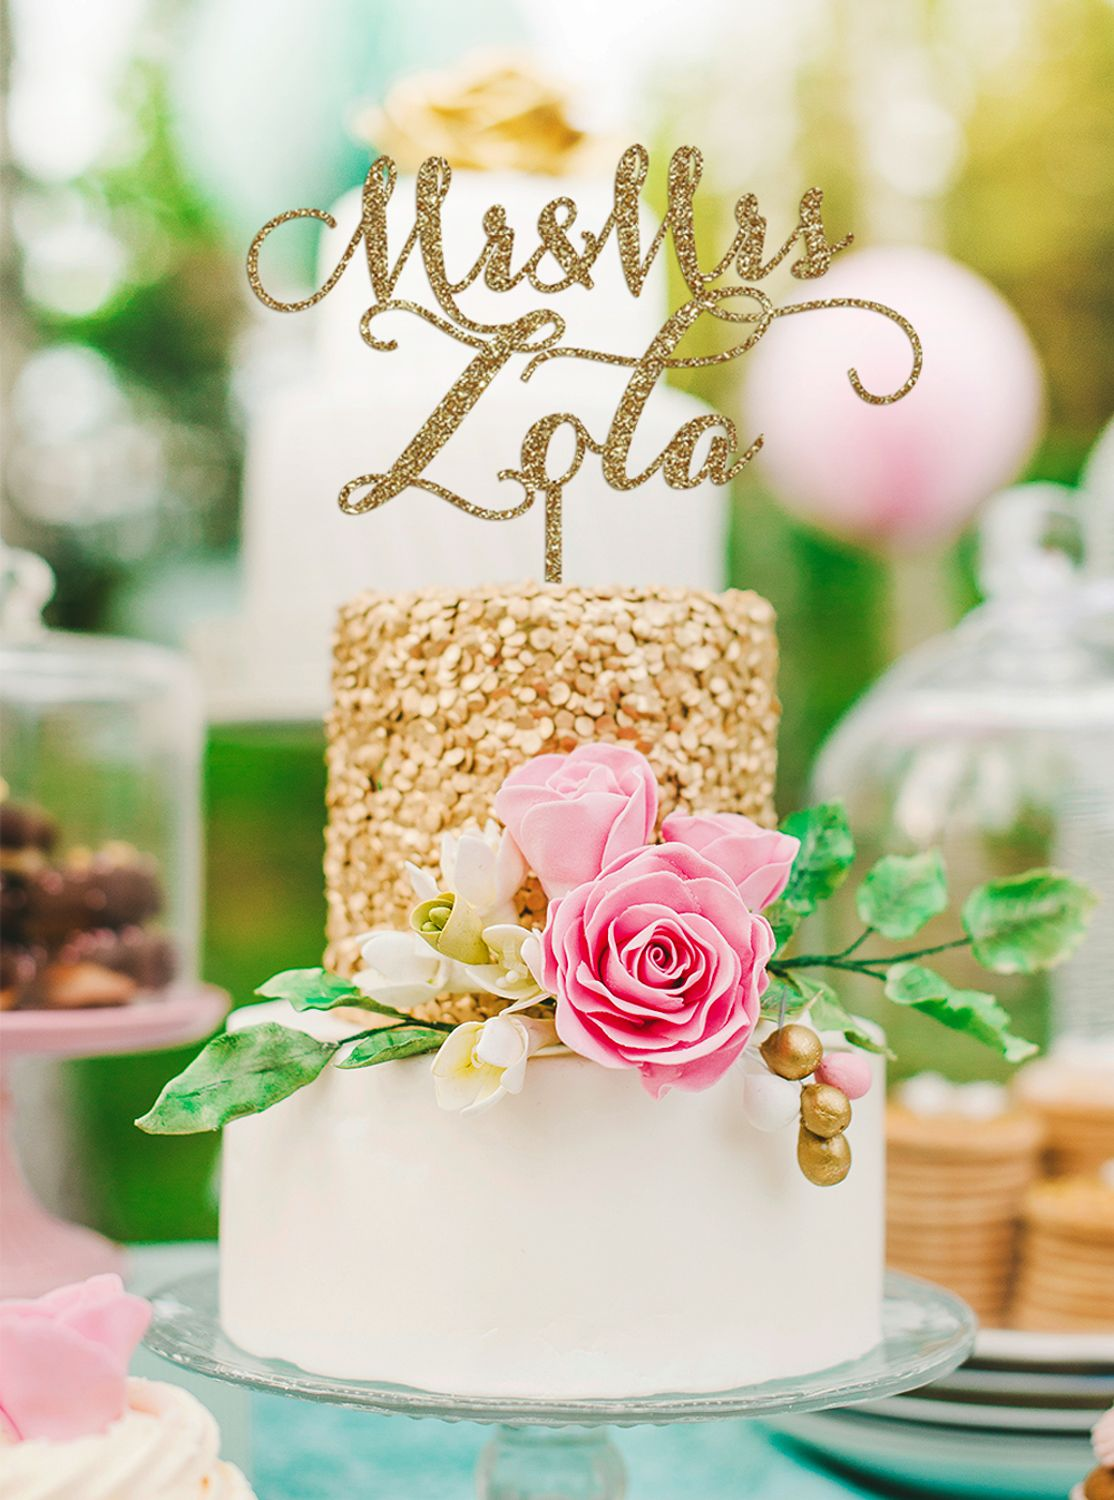 Personalized wedding cake toppers with the bride and groomus name